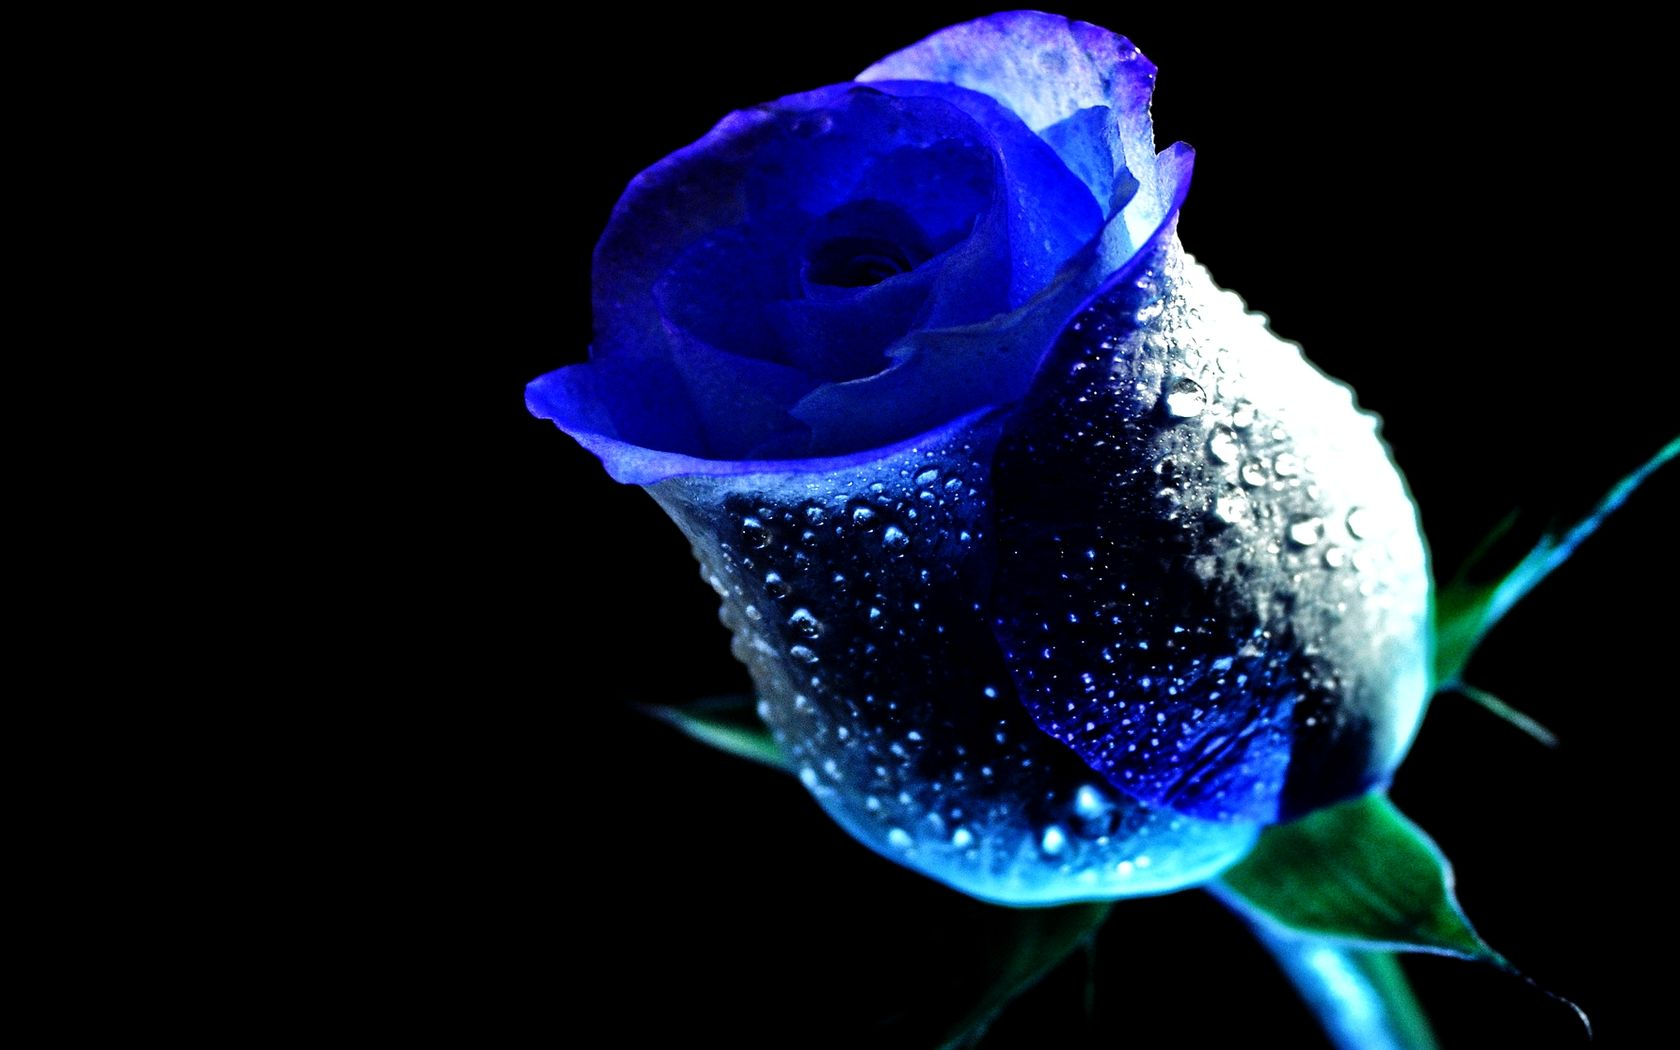 Blue Roses Wet Rose Blue Dew Drop Flower Rose Water Brian